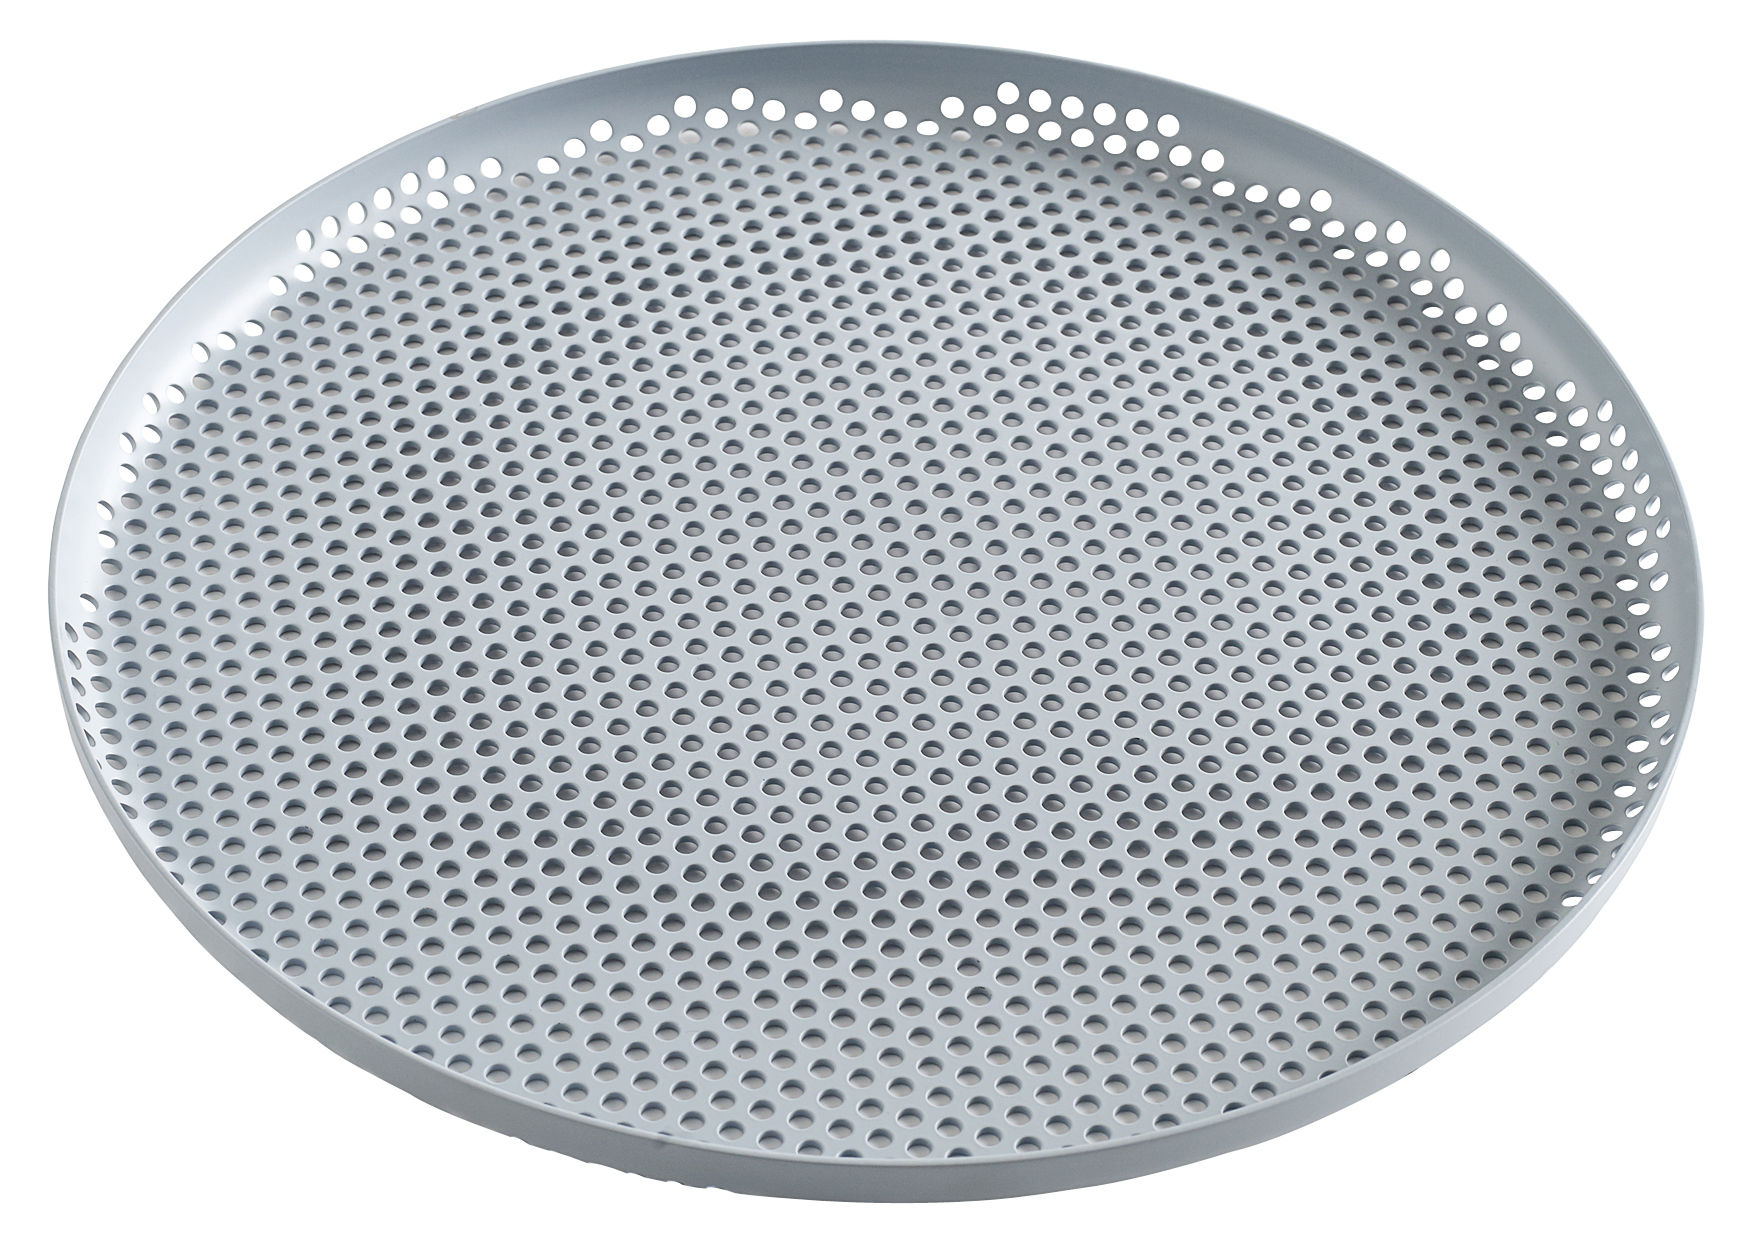 Tableware - Trays - perforé Tray - / Large - Ø 35 cm by Hay - Grey-blue - Perforated aluminium